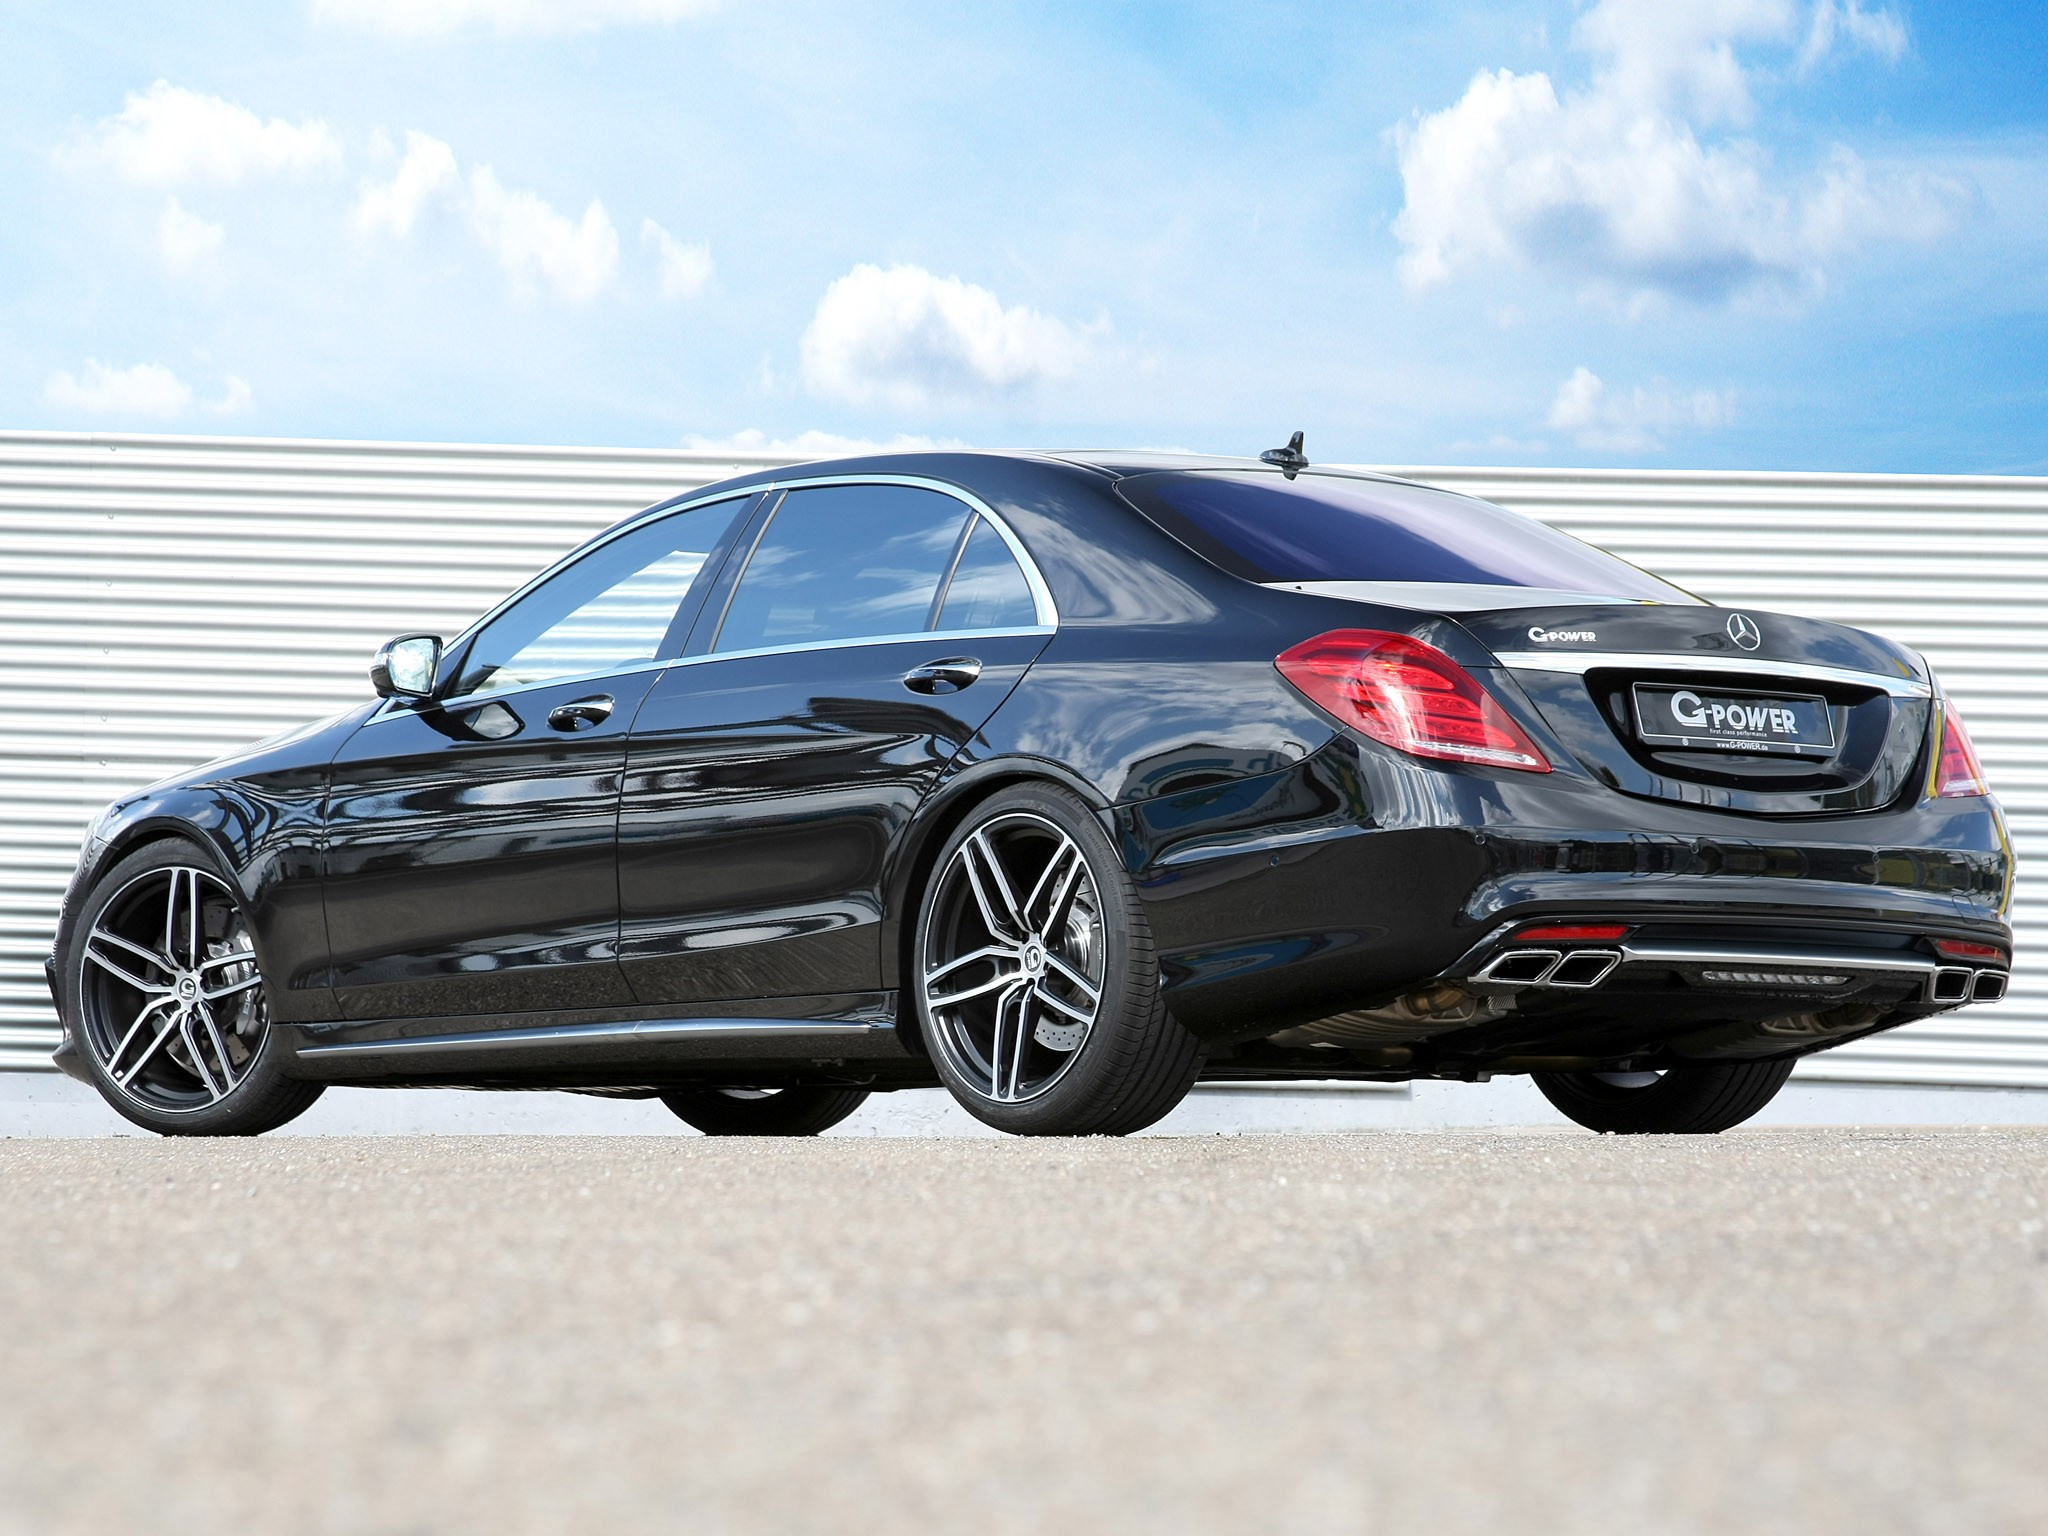 2015 G-power - AMG Mercedes S63 Lang V222